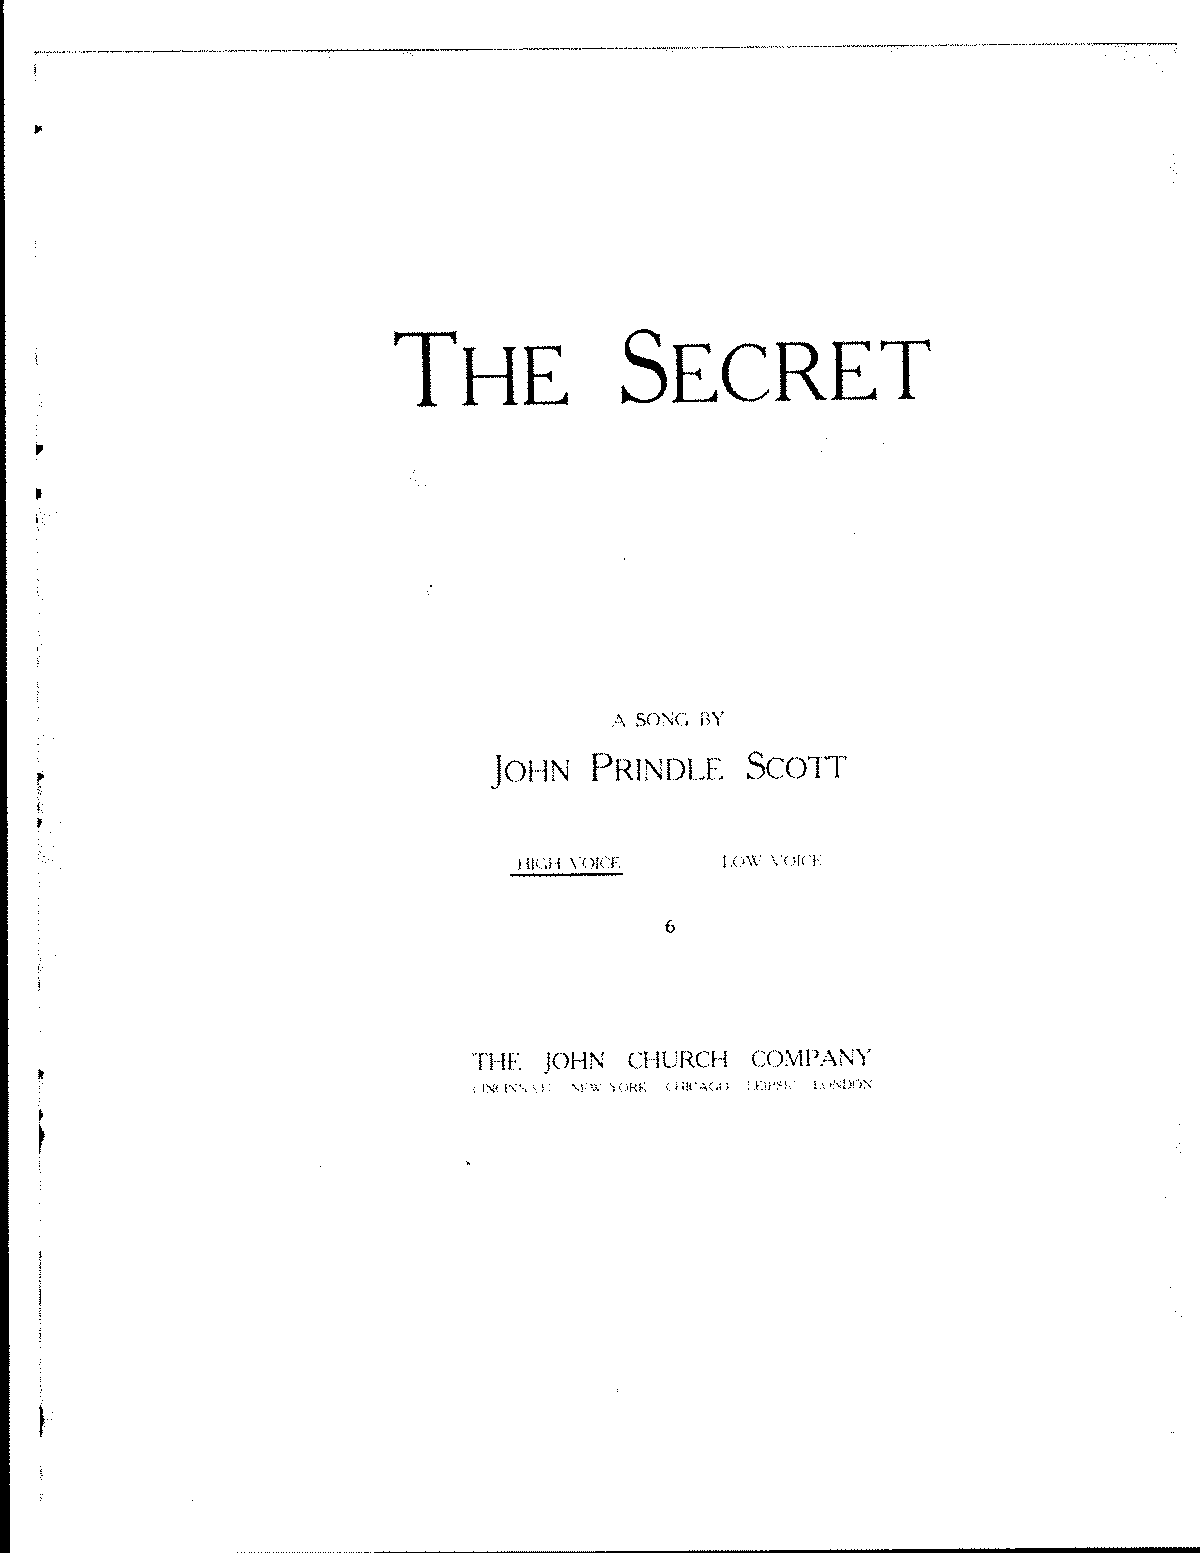 SIBLEY1802.1924.9c22-Scott The Secret.pdf